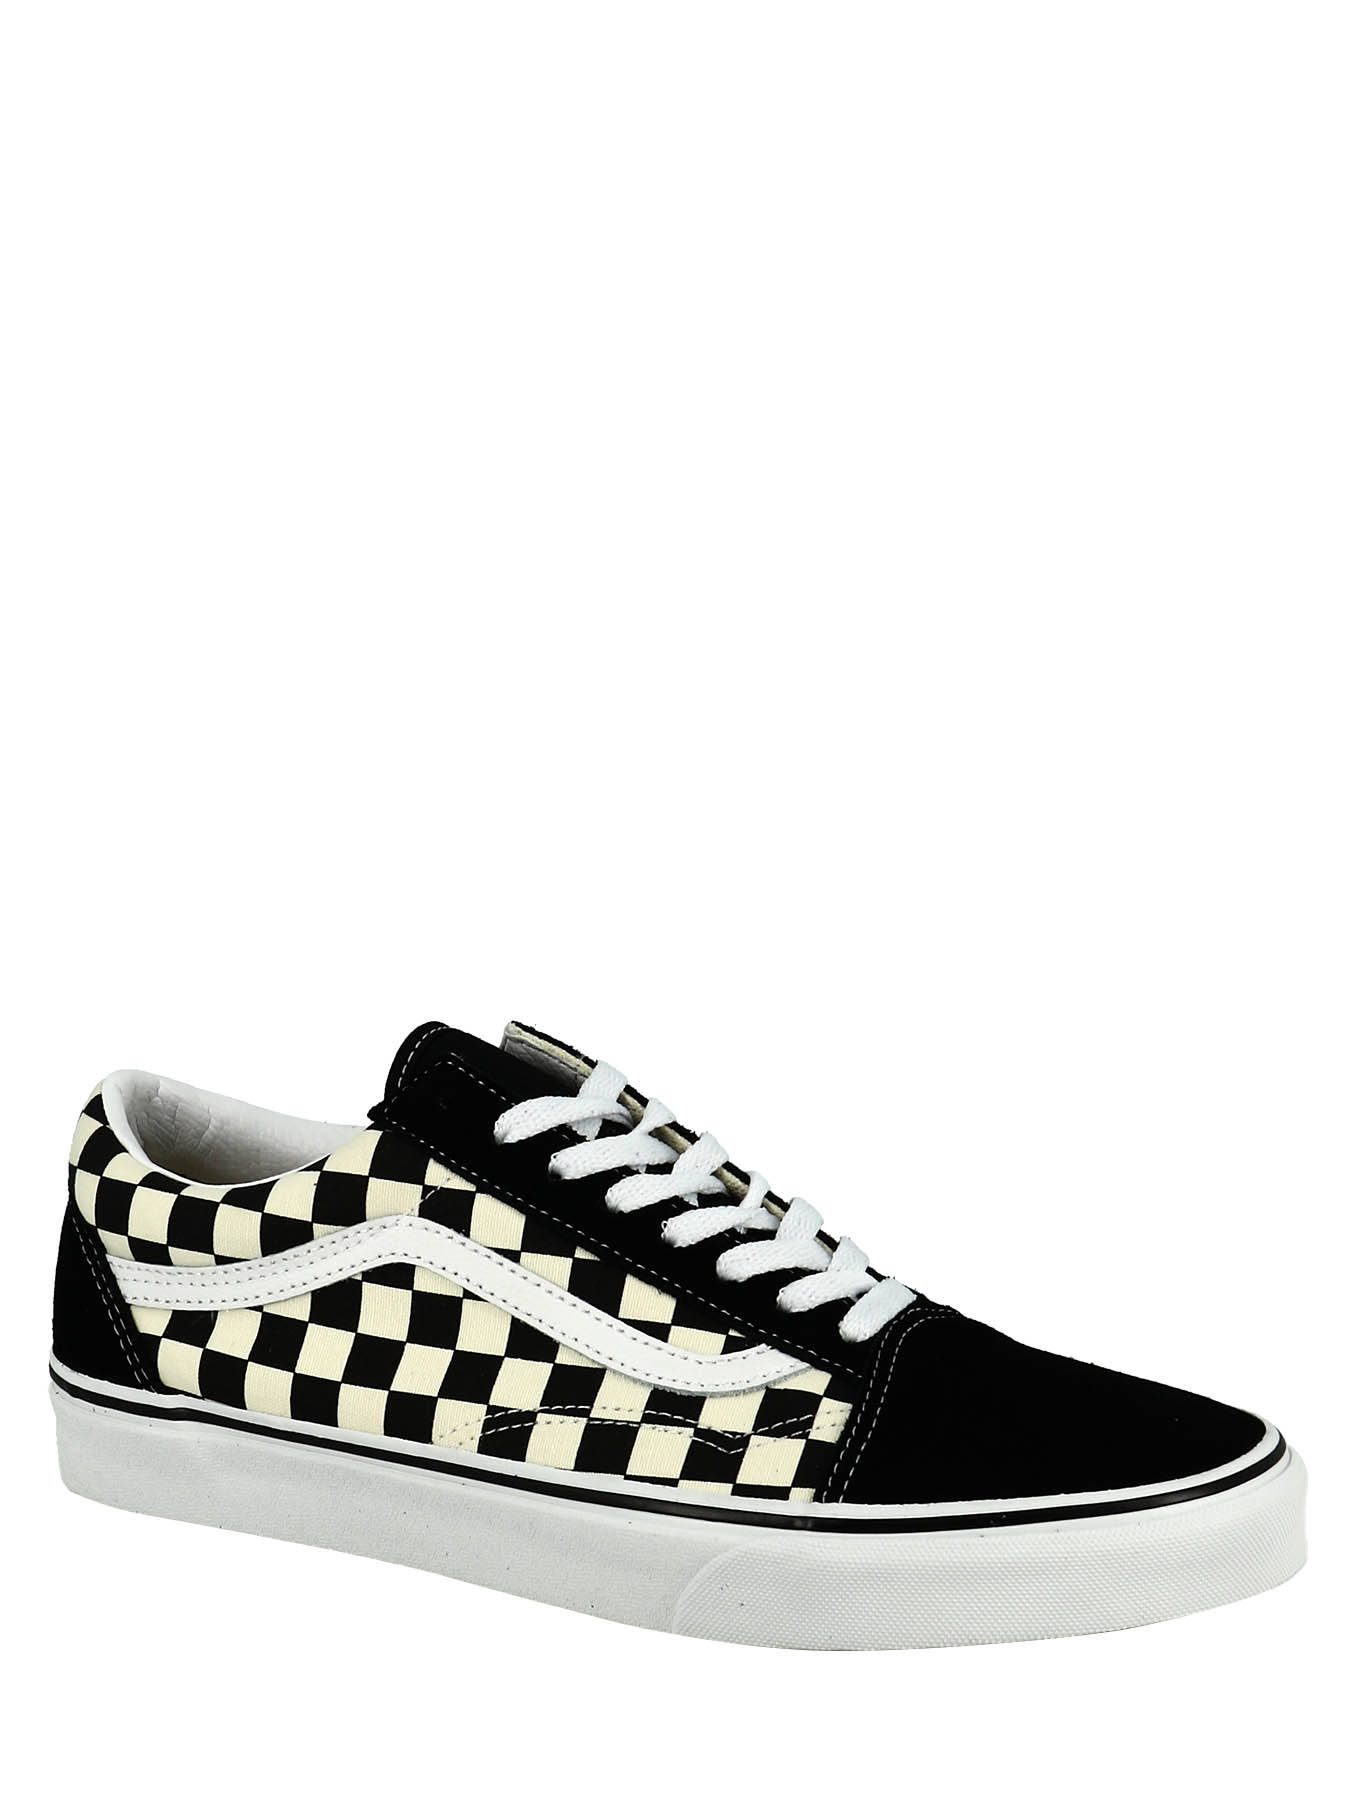 Sneakers OLD SKOOL Noir Blanc VANS